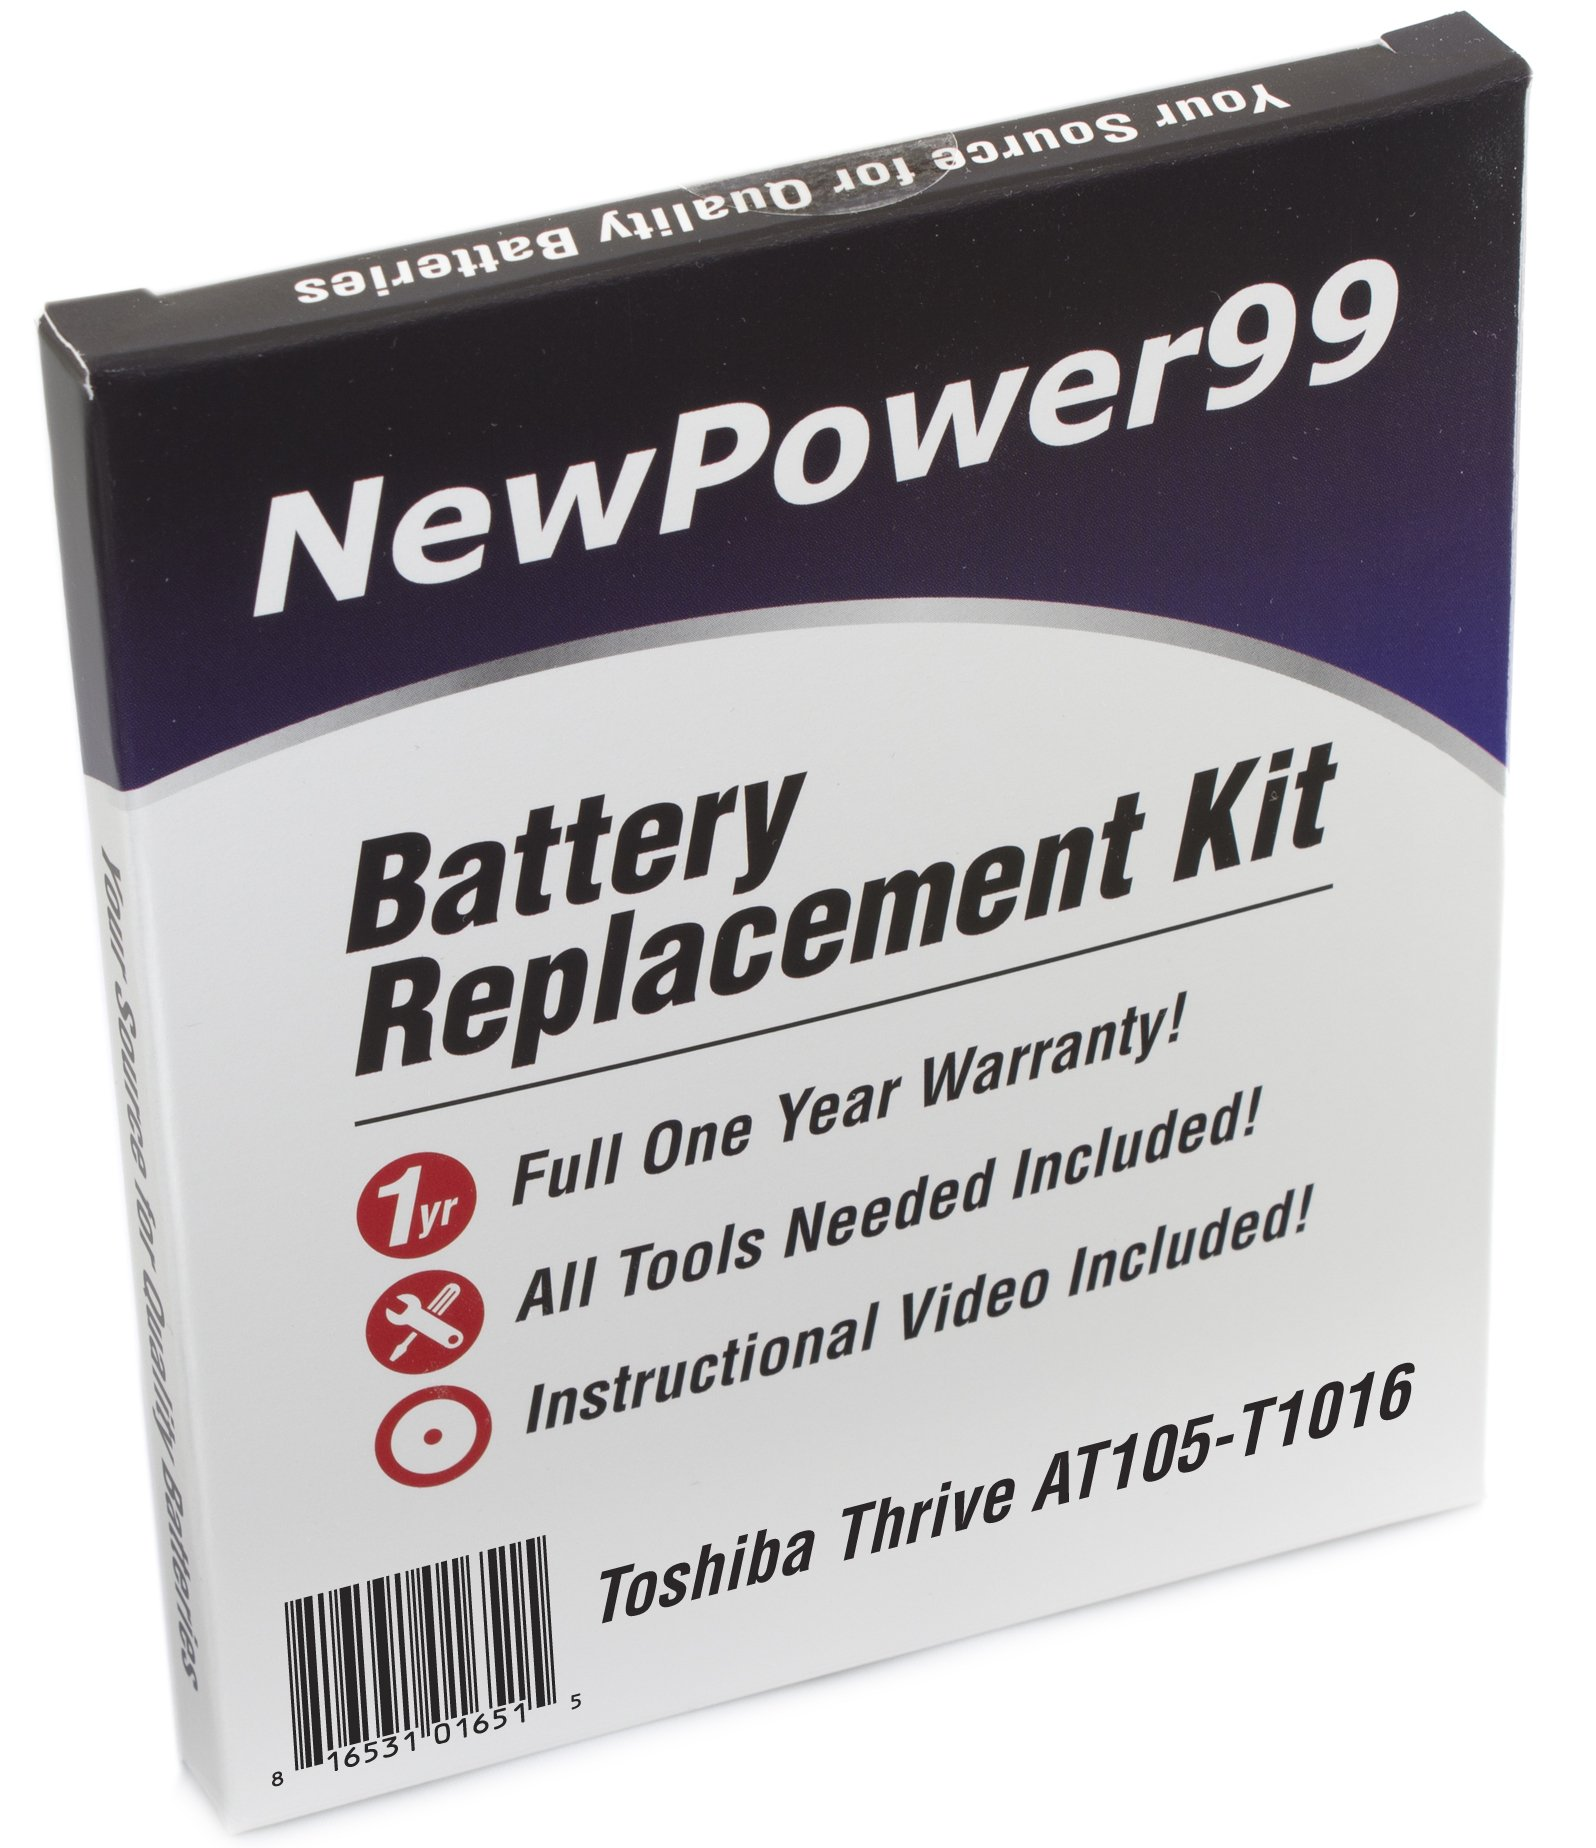 Toshiba Thrive AT105-T016 Battery Replacement Kit with Video Installation DVD, Installation Tools, and Extended Life Battery